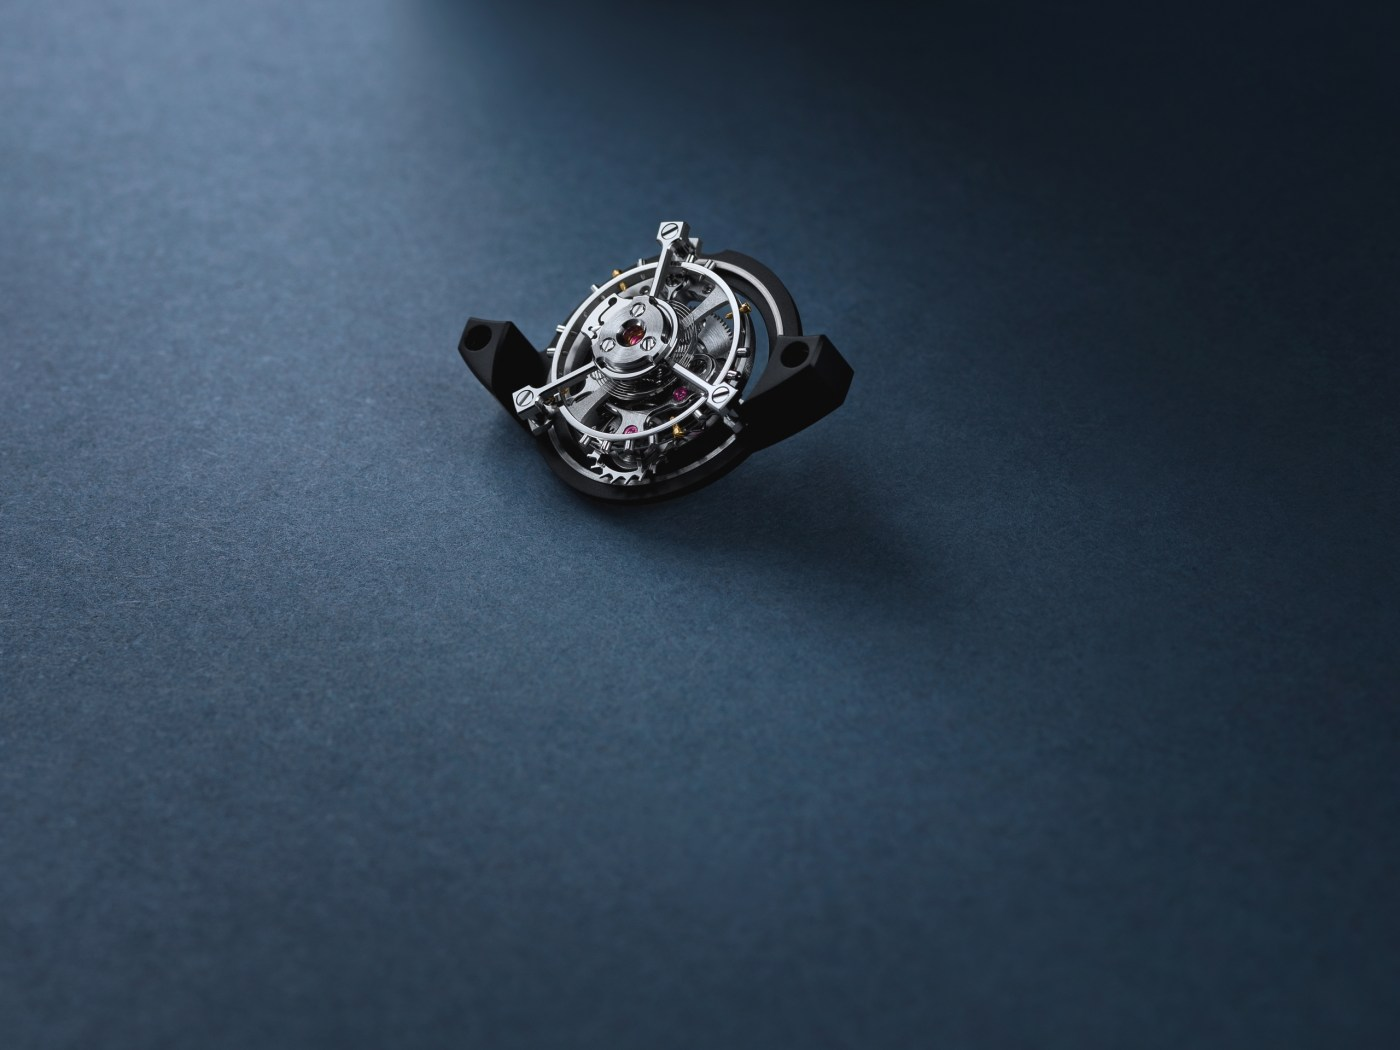 AP Code 11.59 Flying Tourbillon Chronograph